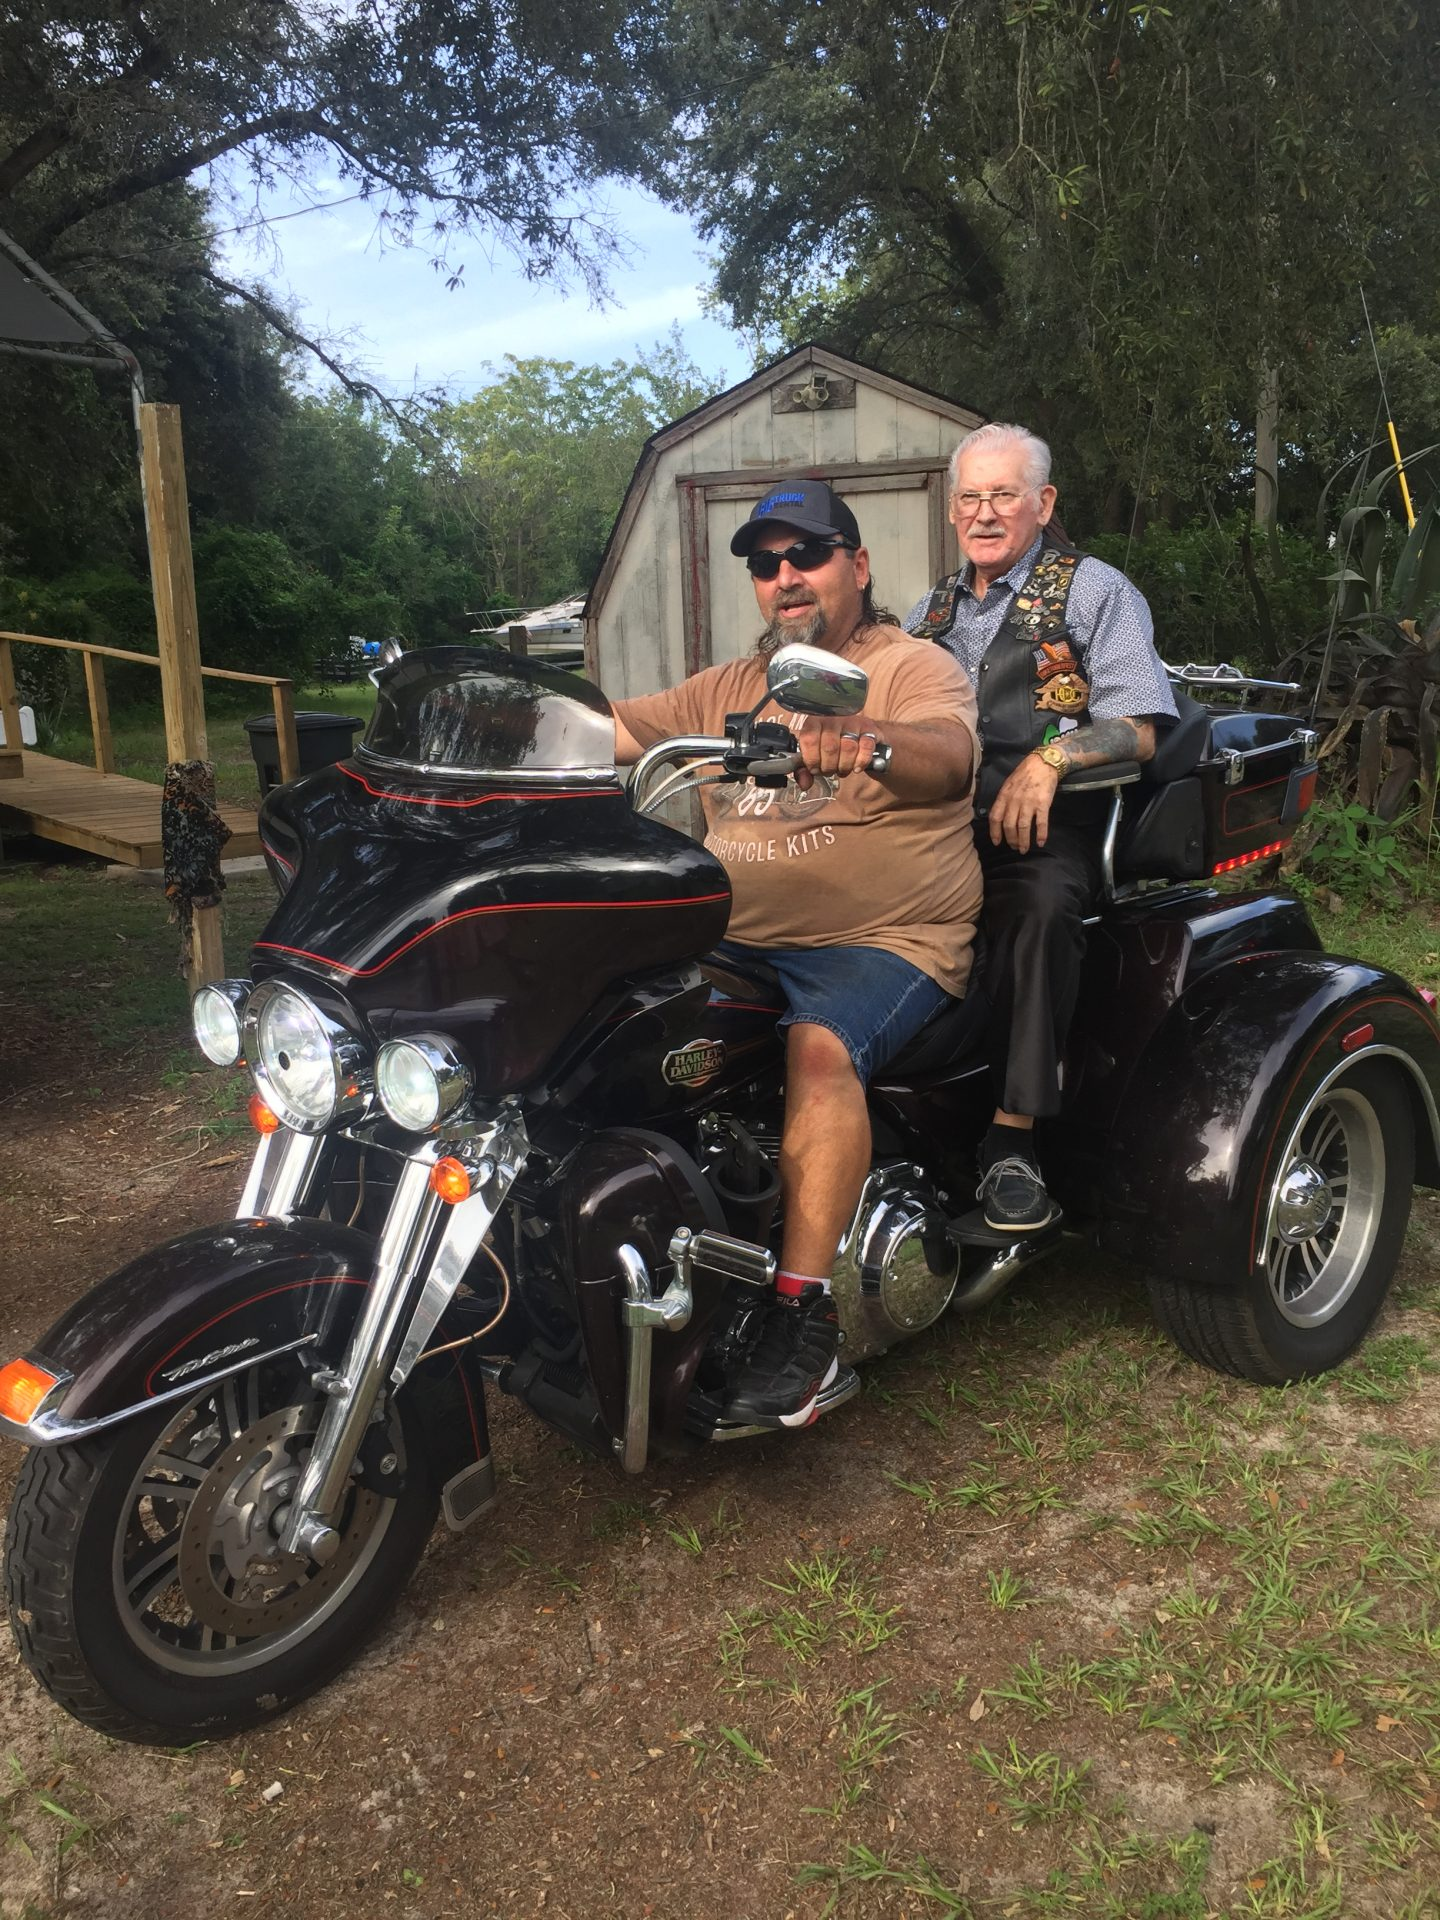 Joe and Dad went for a ride